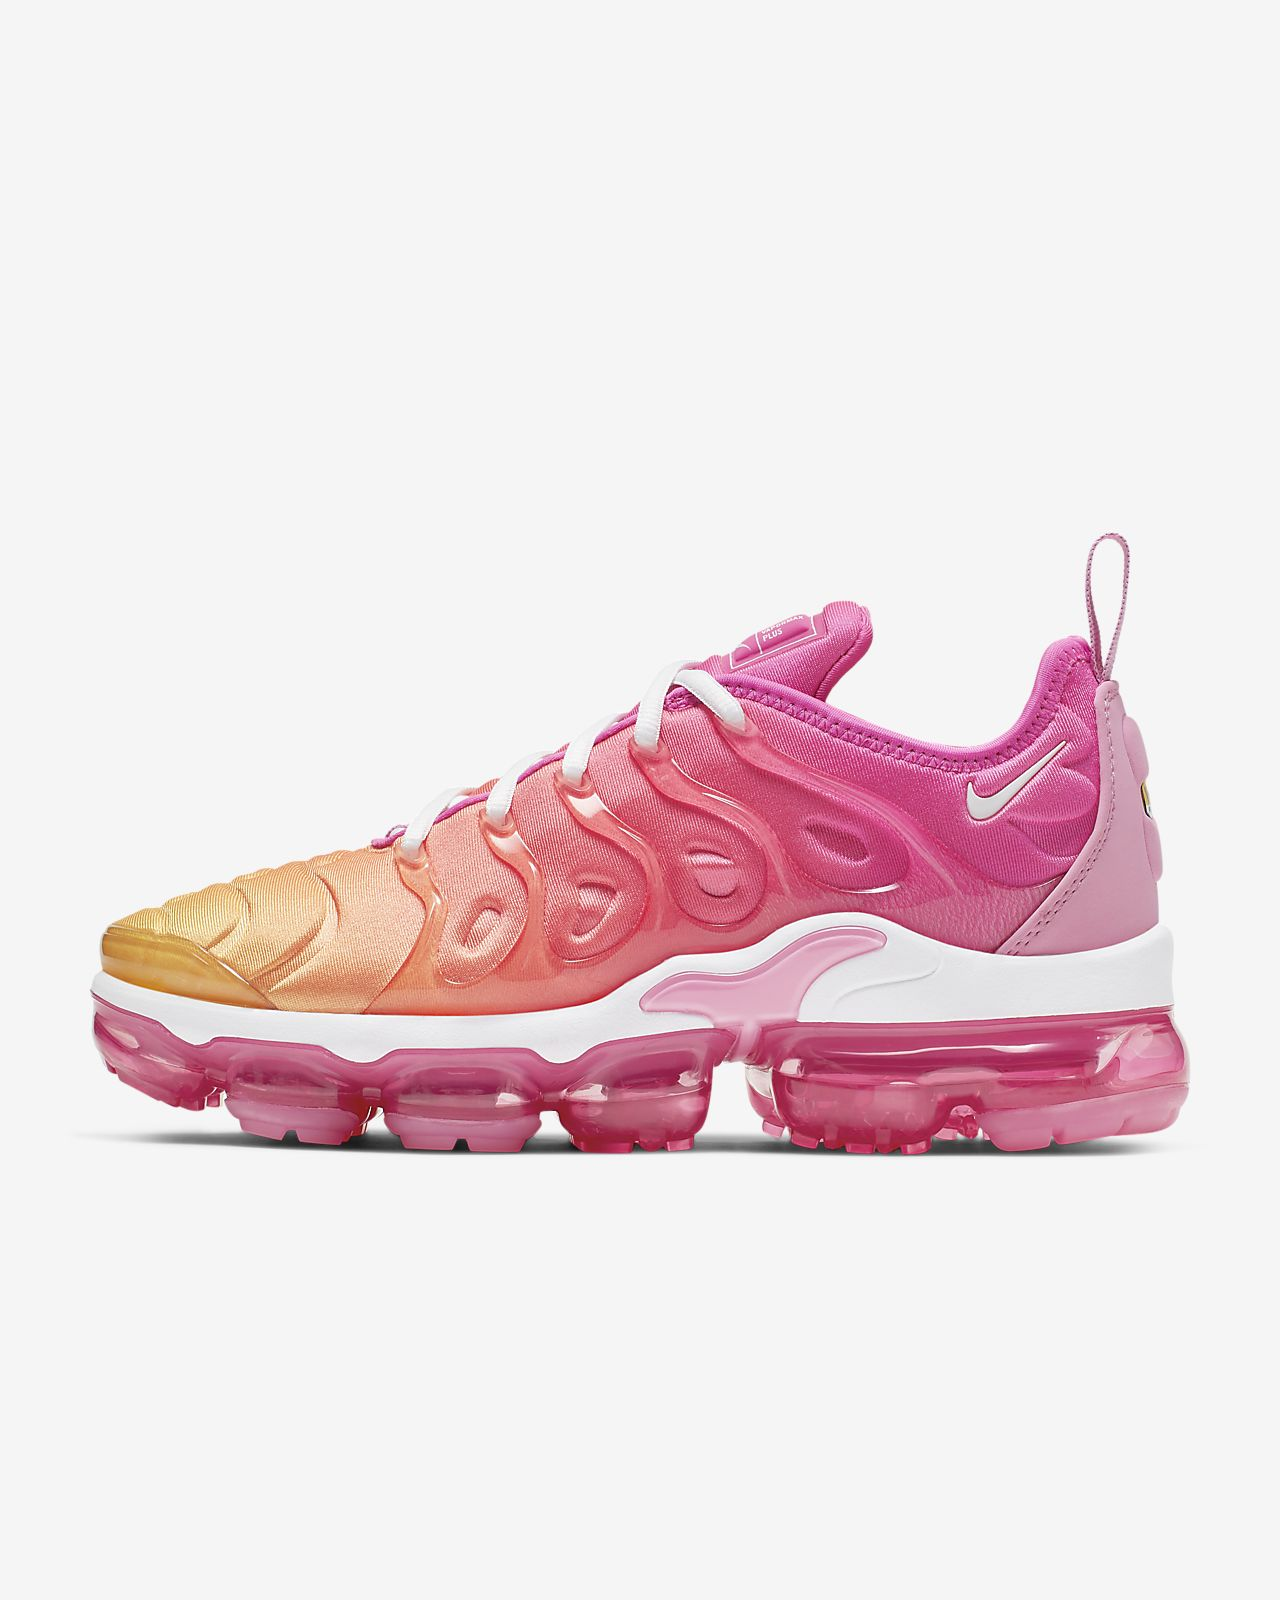 03dac371184d Nike Air VaporMax Plus Women s Shoe. Nike.com